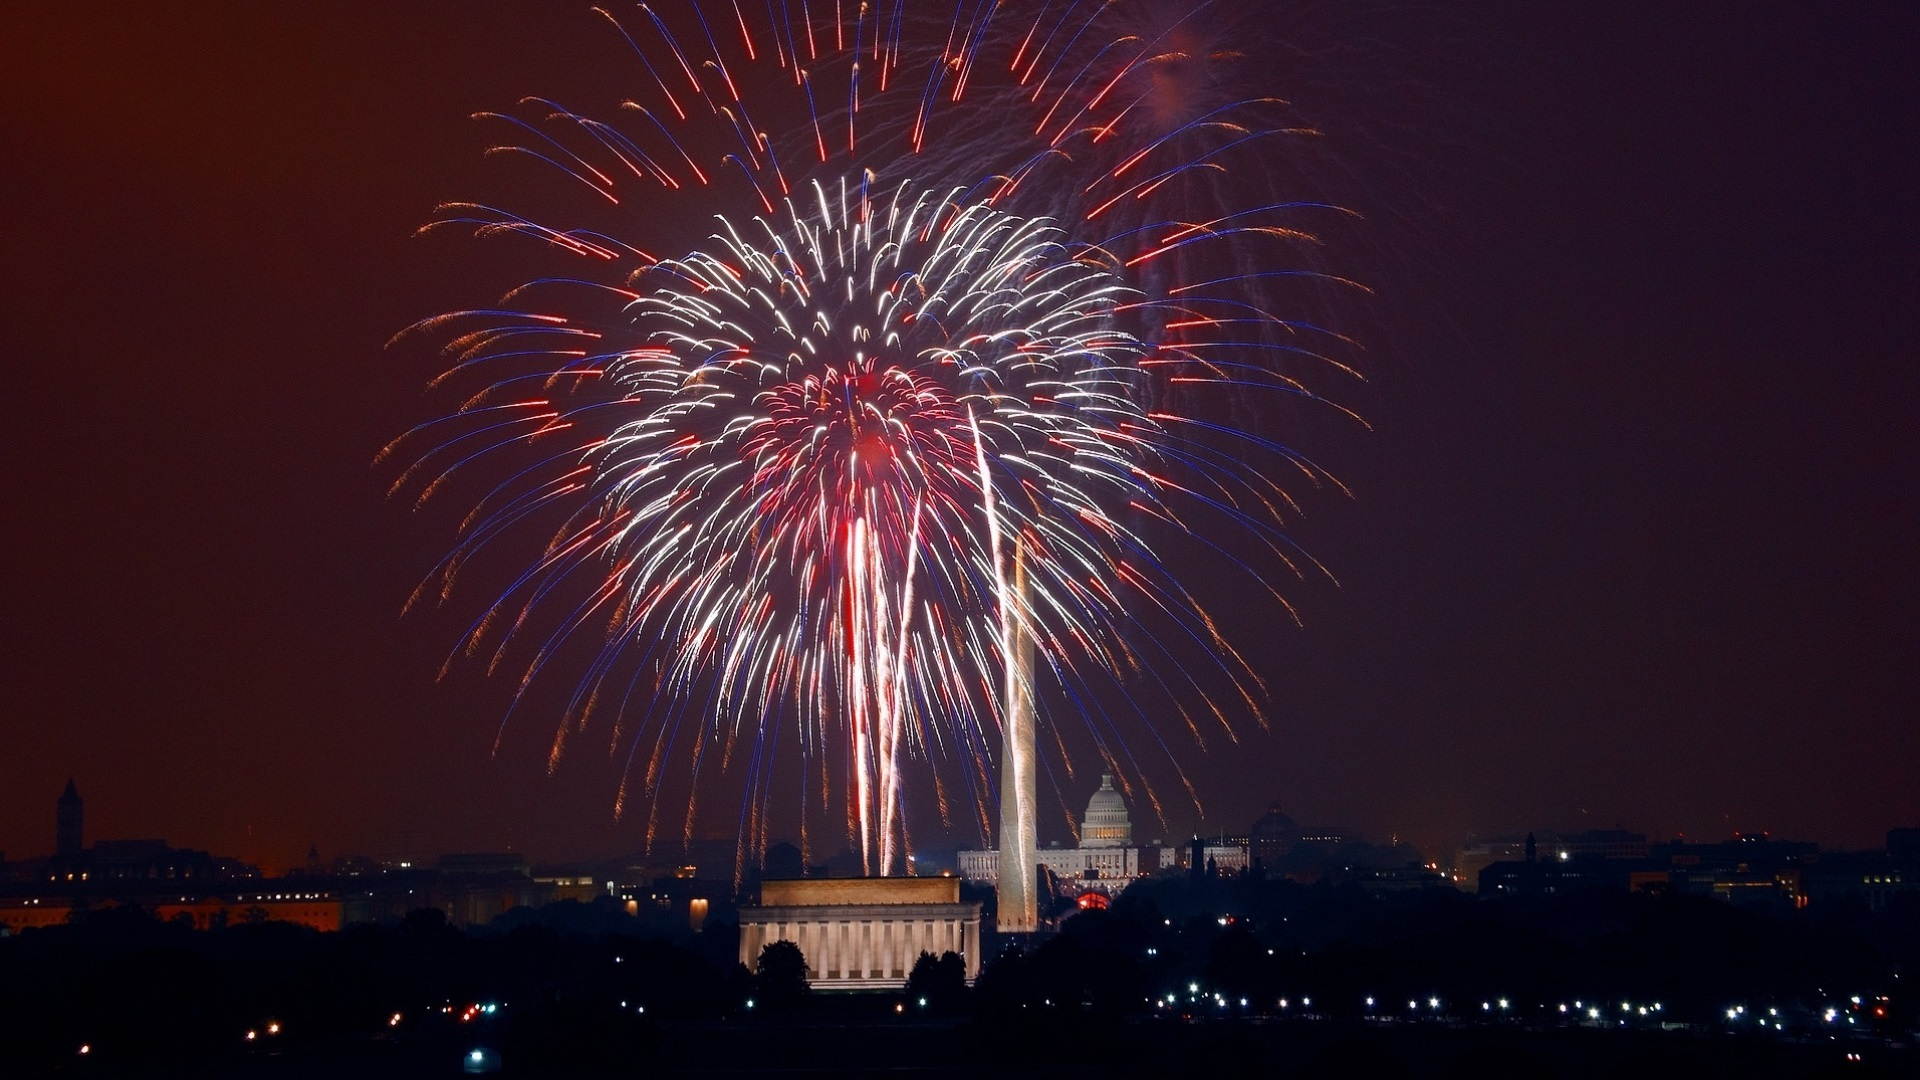 Fourth of July fireworks over the Lincoln Memorial with the Capitol in the background.